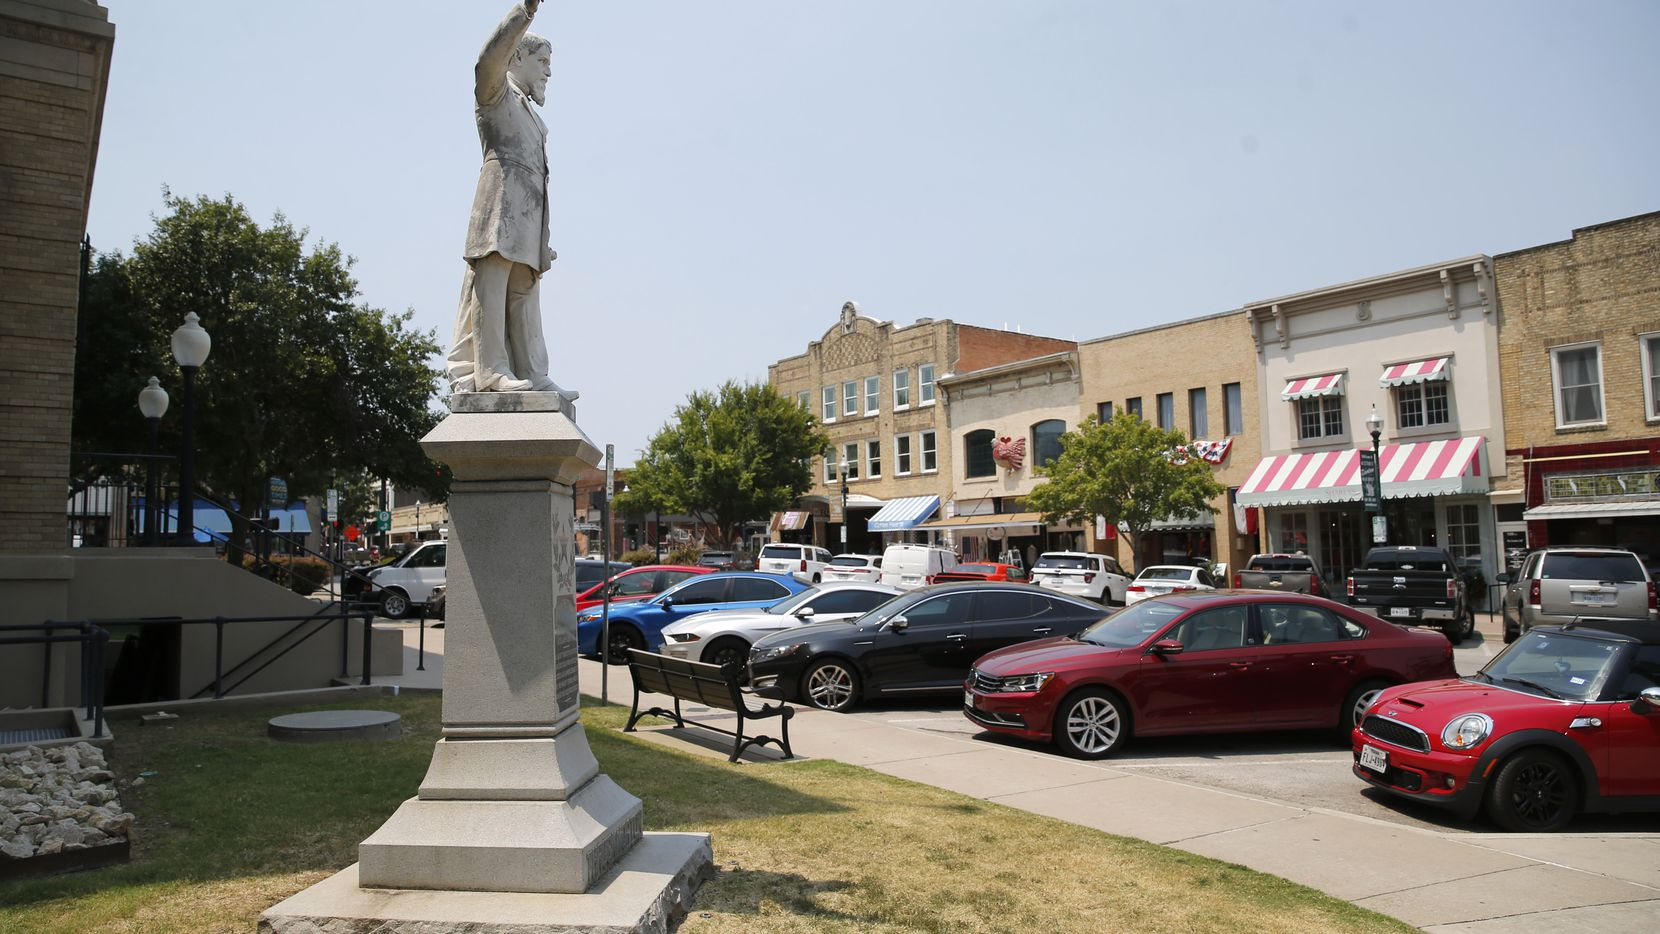 A statue of James W. Throckmorton, a Confederate brigadier general, sits in the McKinney square.